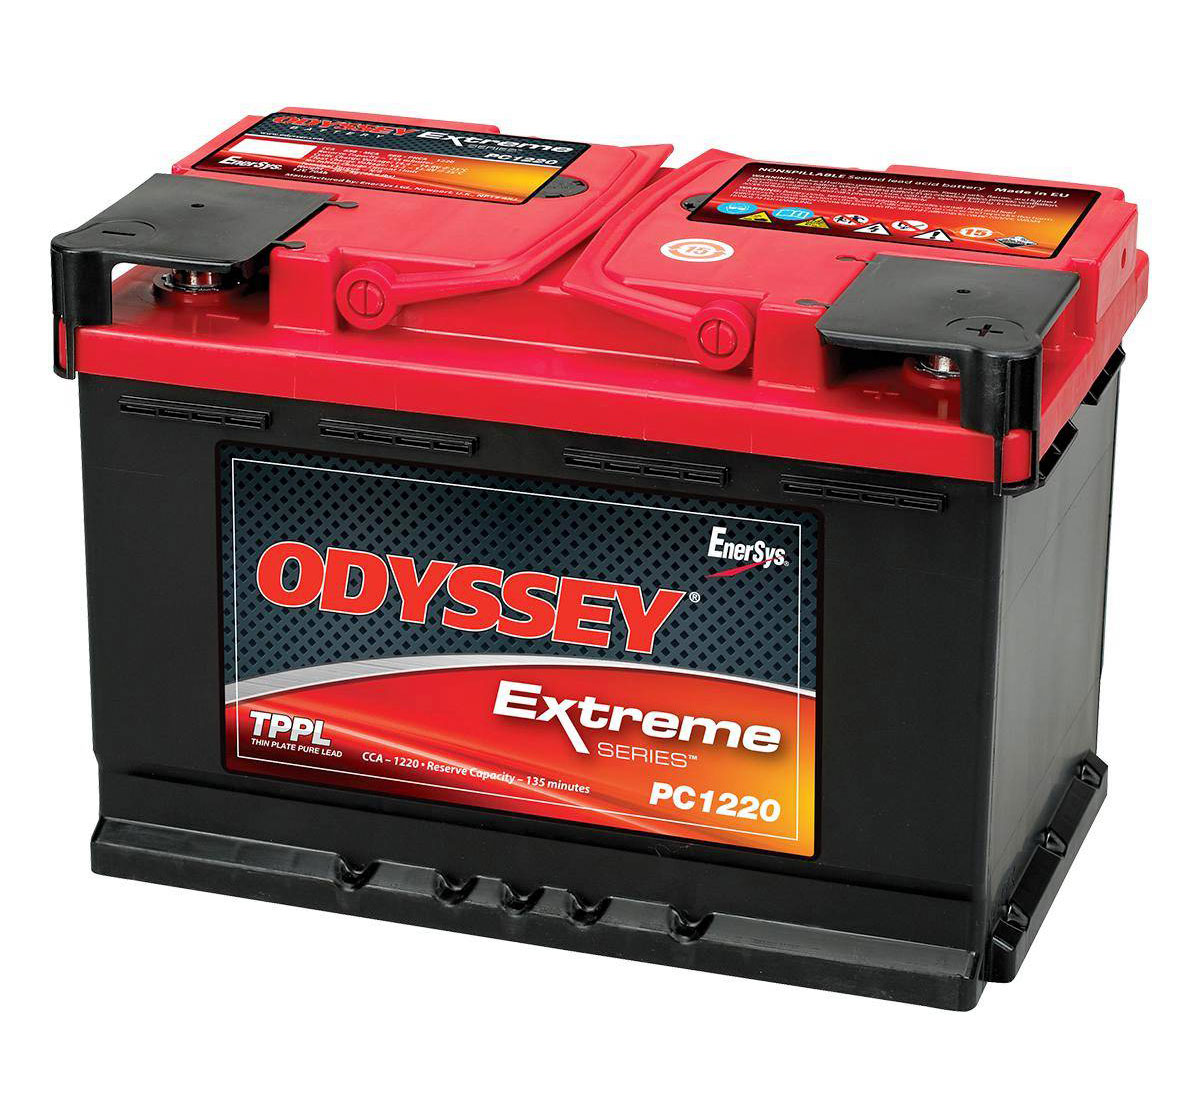 Odyssey PC1220 Extreme Starter Battery